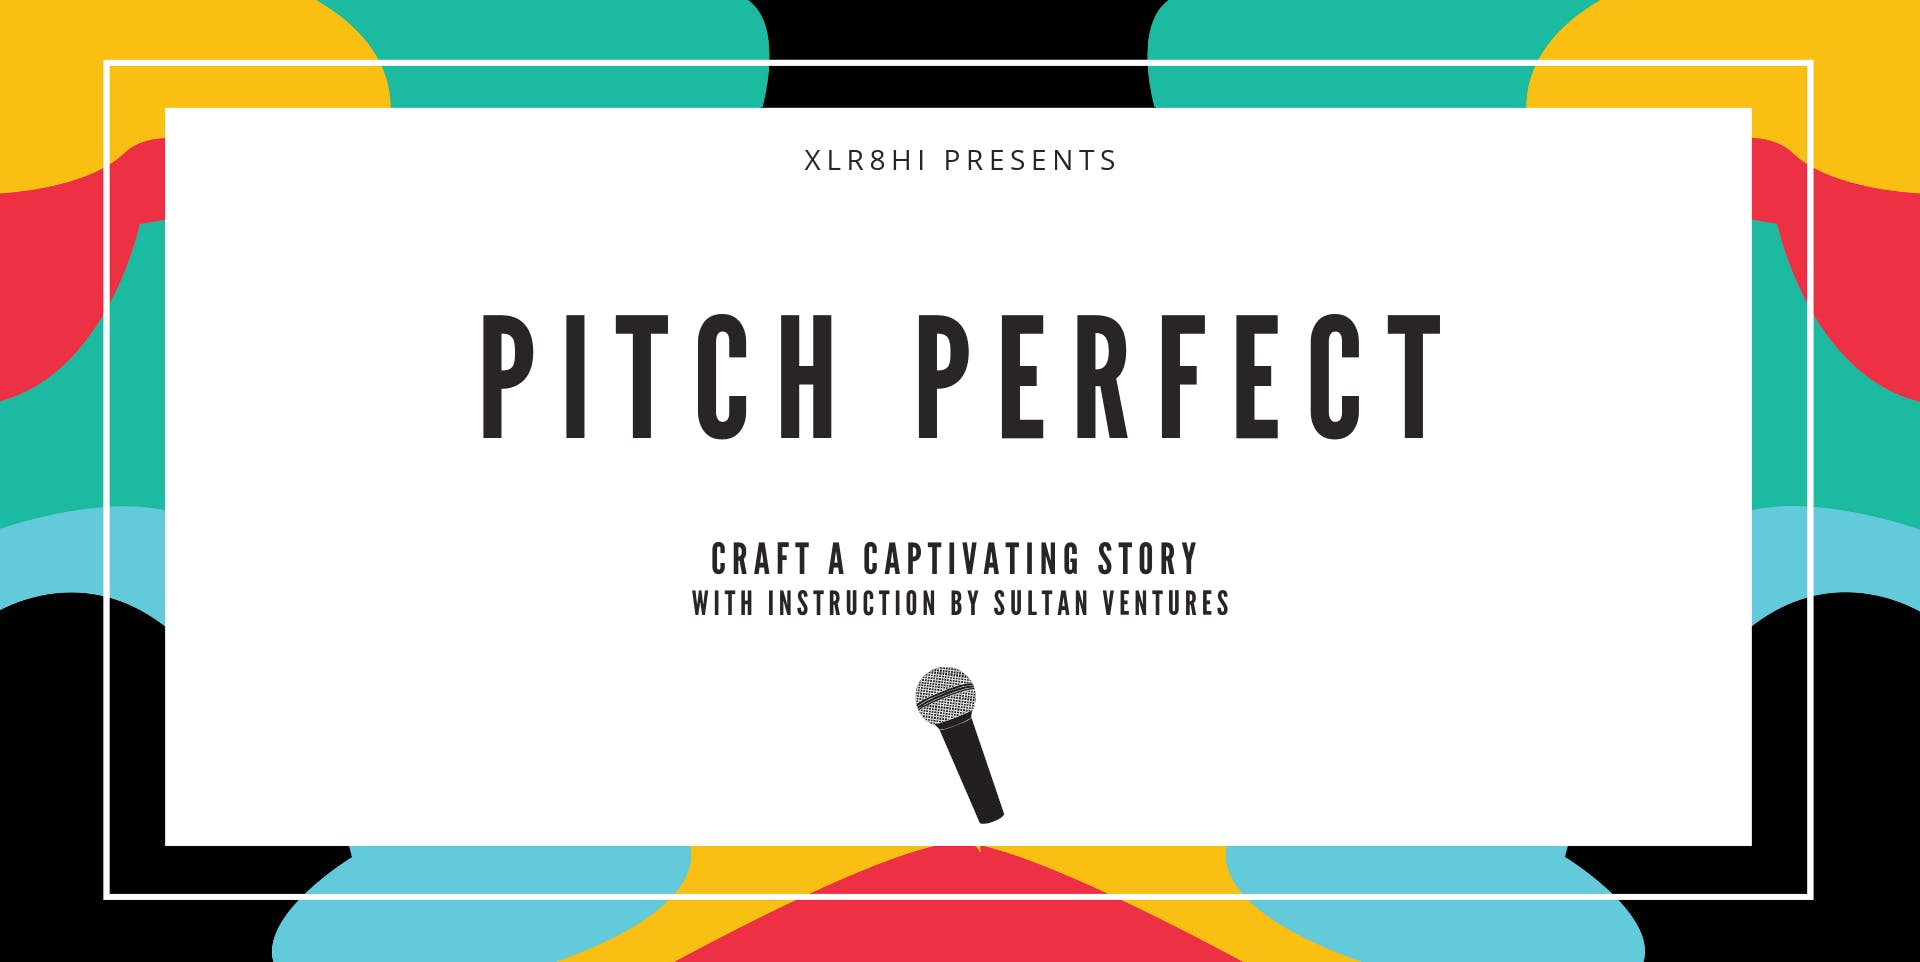 Pitch Perfect: Craft a Captivating Story